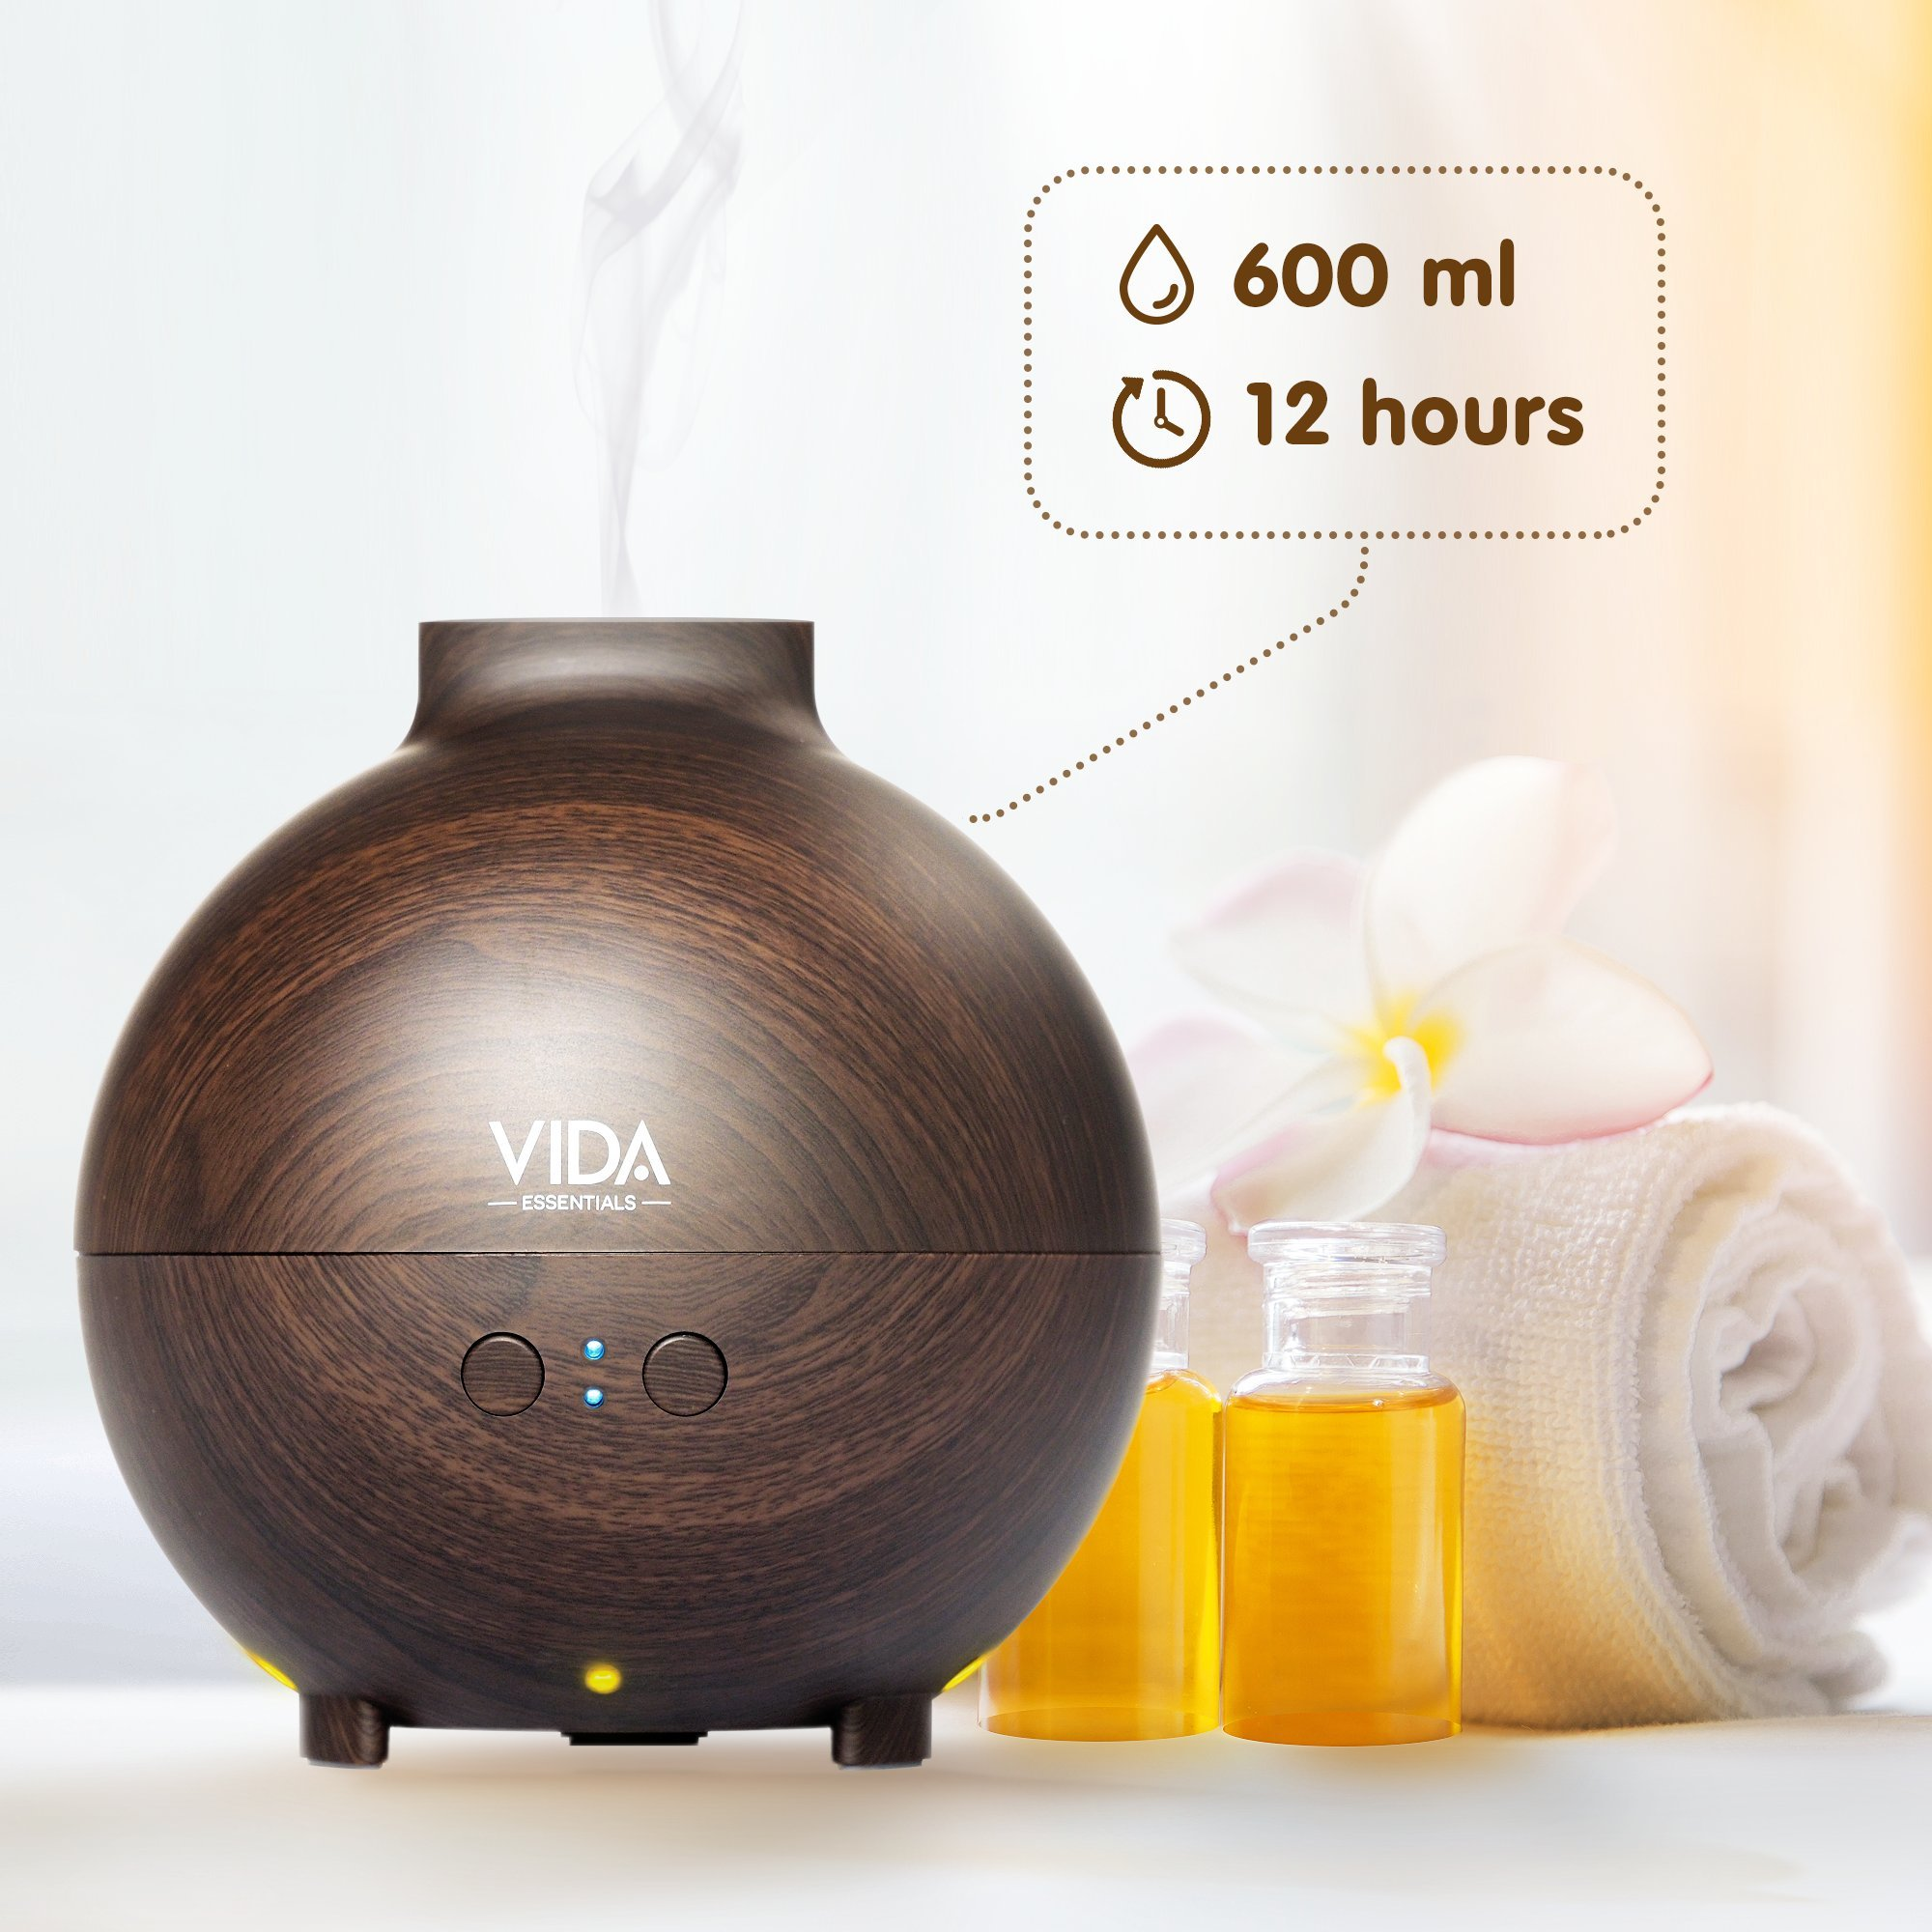 Extra Large Essential Oil Diffuser Holds a Big 20 FL OZ / 600 ml. Lasts All Night, Very Quiet. Mist Humidifier Aromatherapy Machine for Office Home Bedroom Study Yoga Spa (Dark Brown). … by Vida Essentials (Image #4)